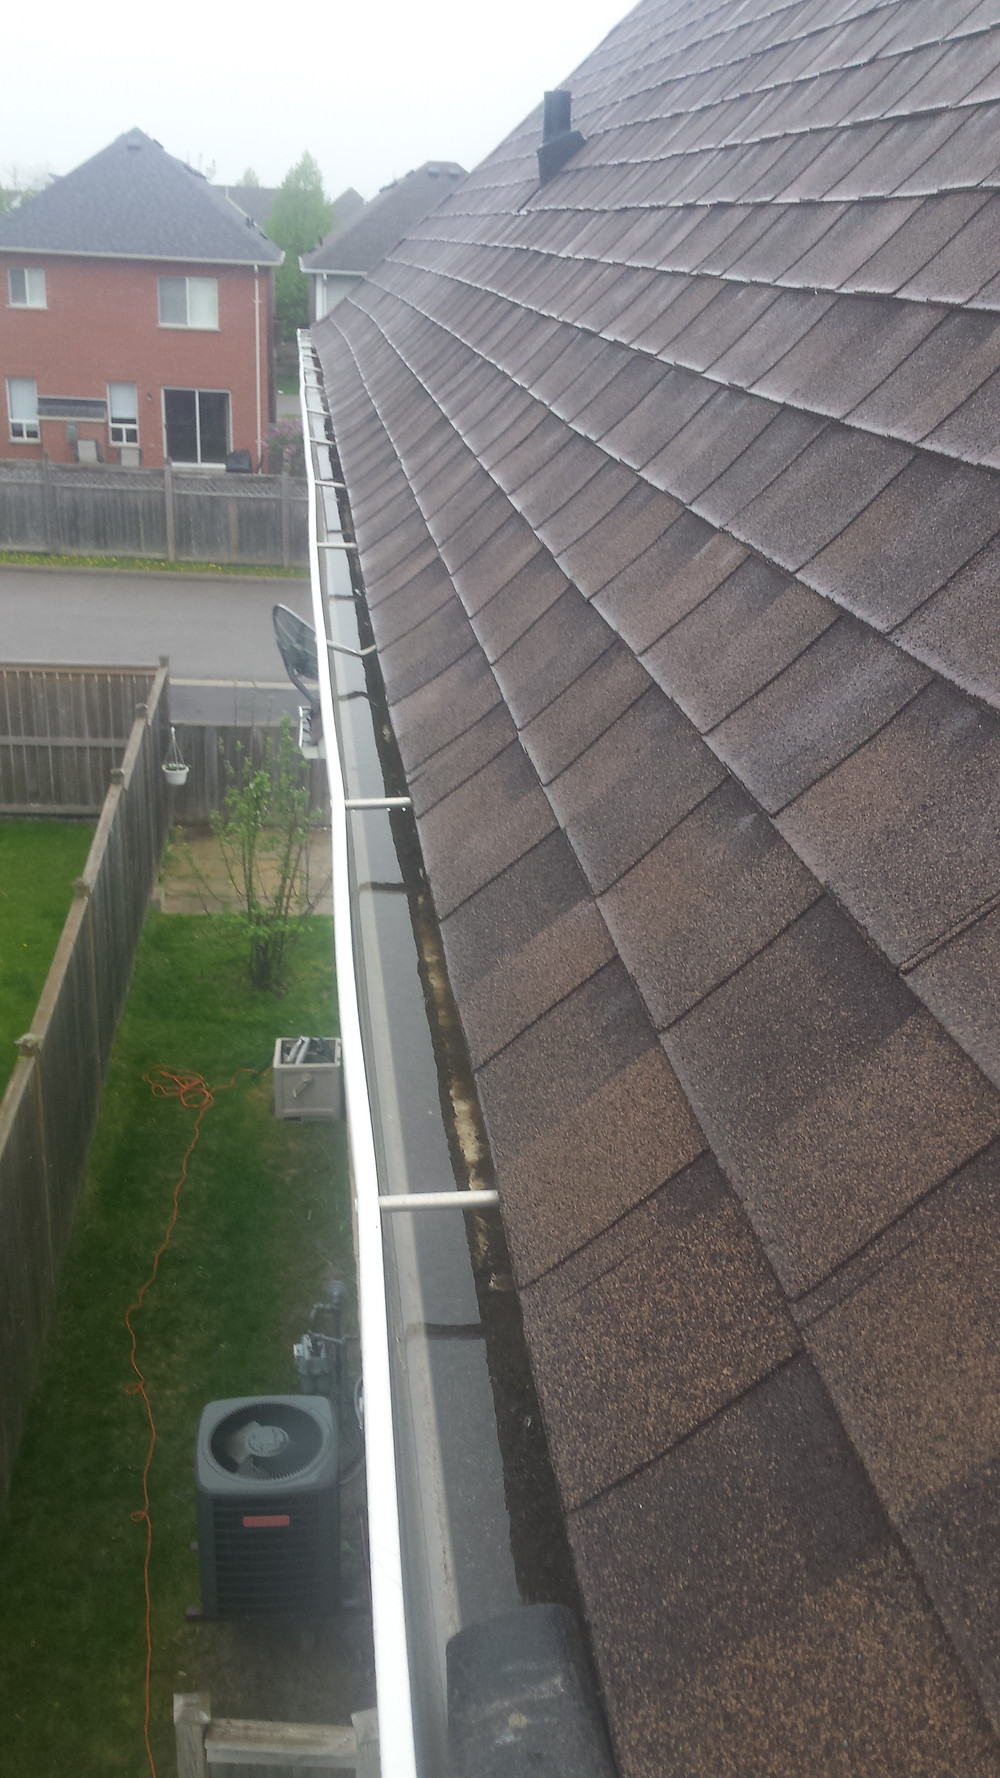 Eavestrough cleaning in progress in Whitby